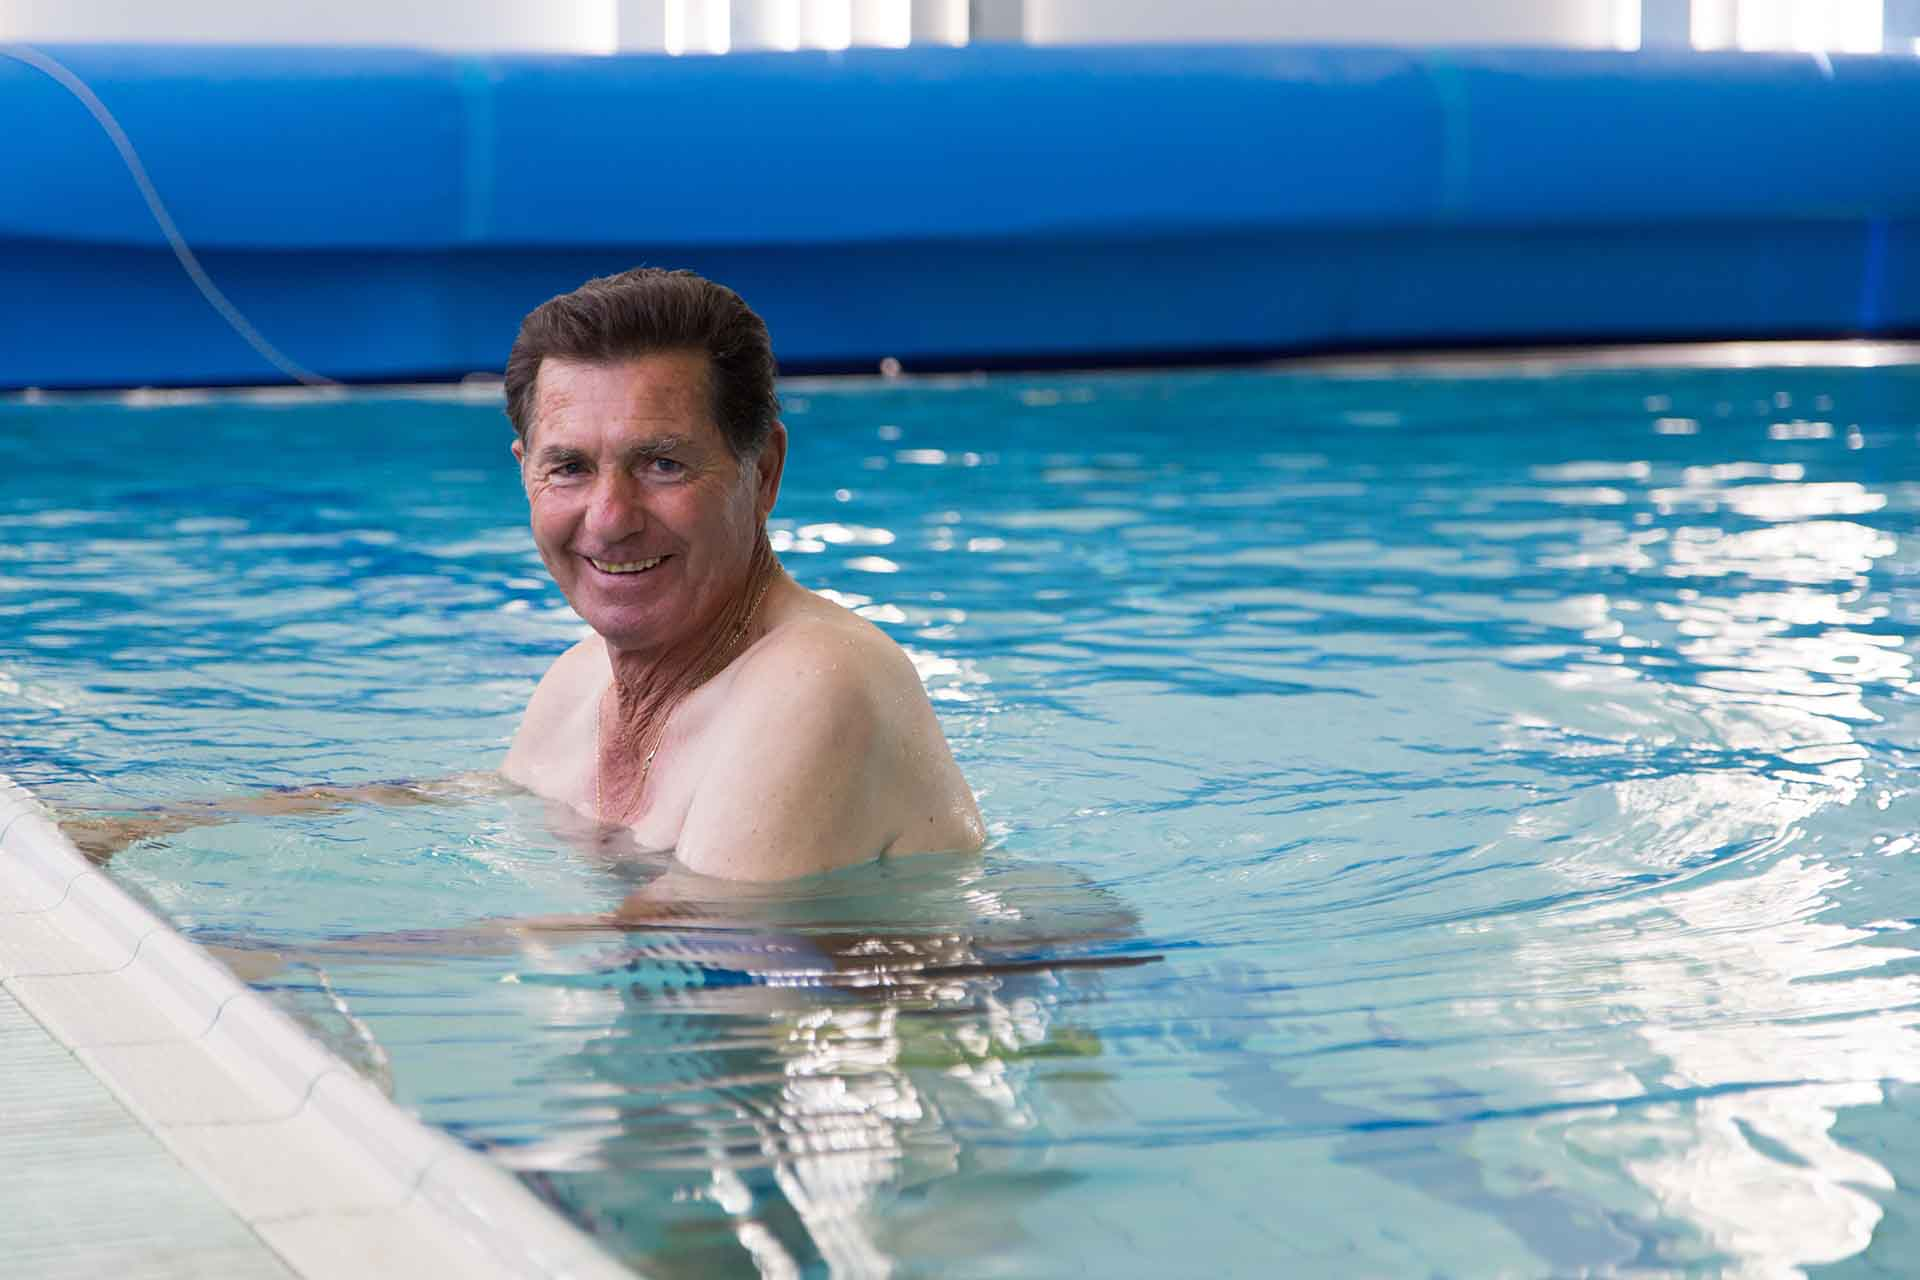 Toumazi Physio Gallery - Hydrotherapy pool man